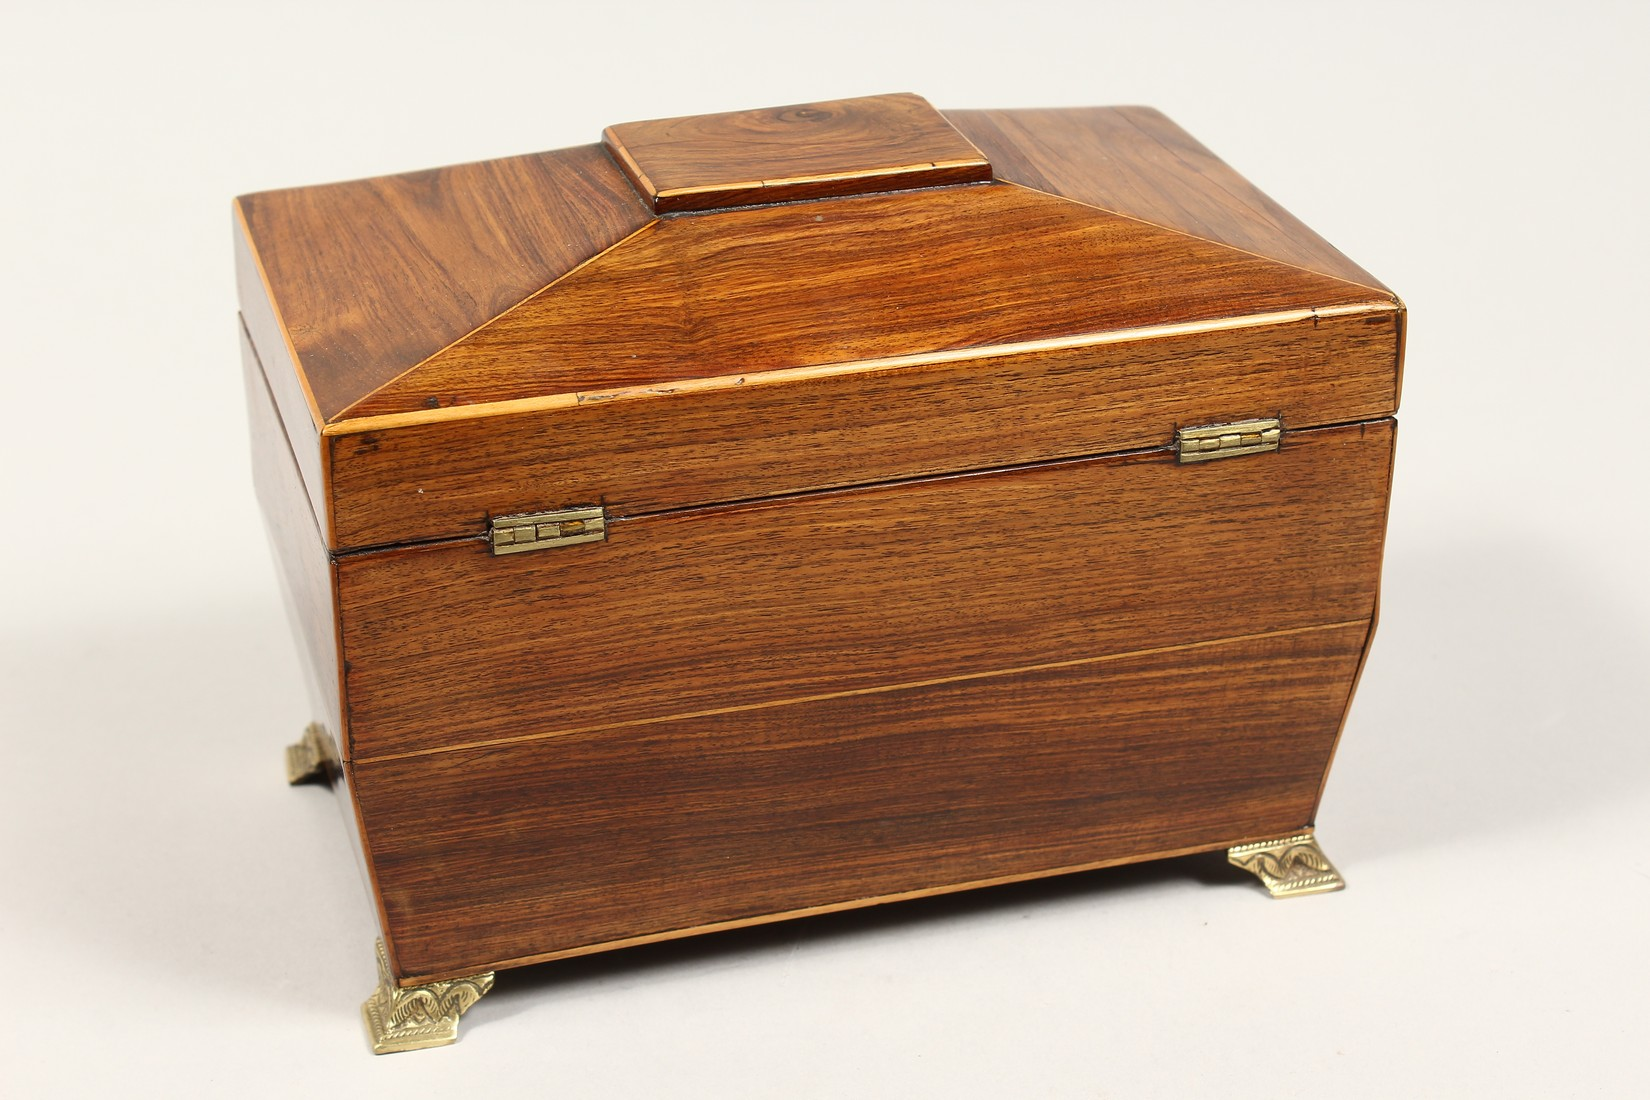 A REGENCY ROSEWOOD DOMED TOP TWO DIVISION TEA CADDY with iron escutcheon on brass bracket feet. 7. - Image 3 of 7